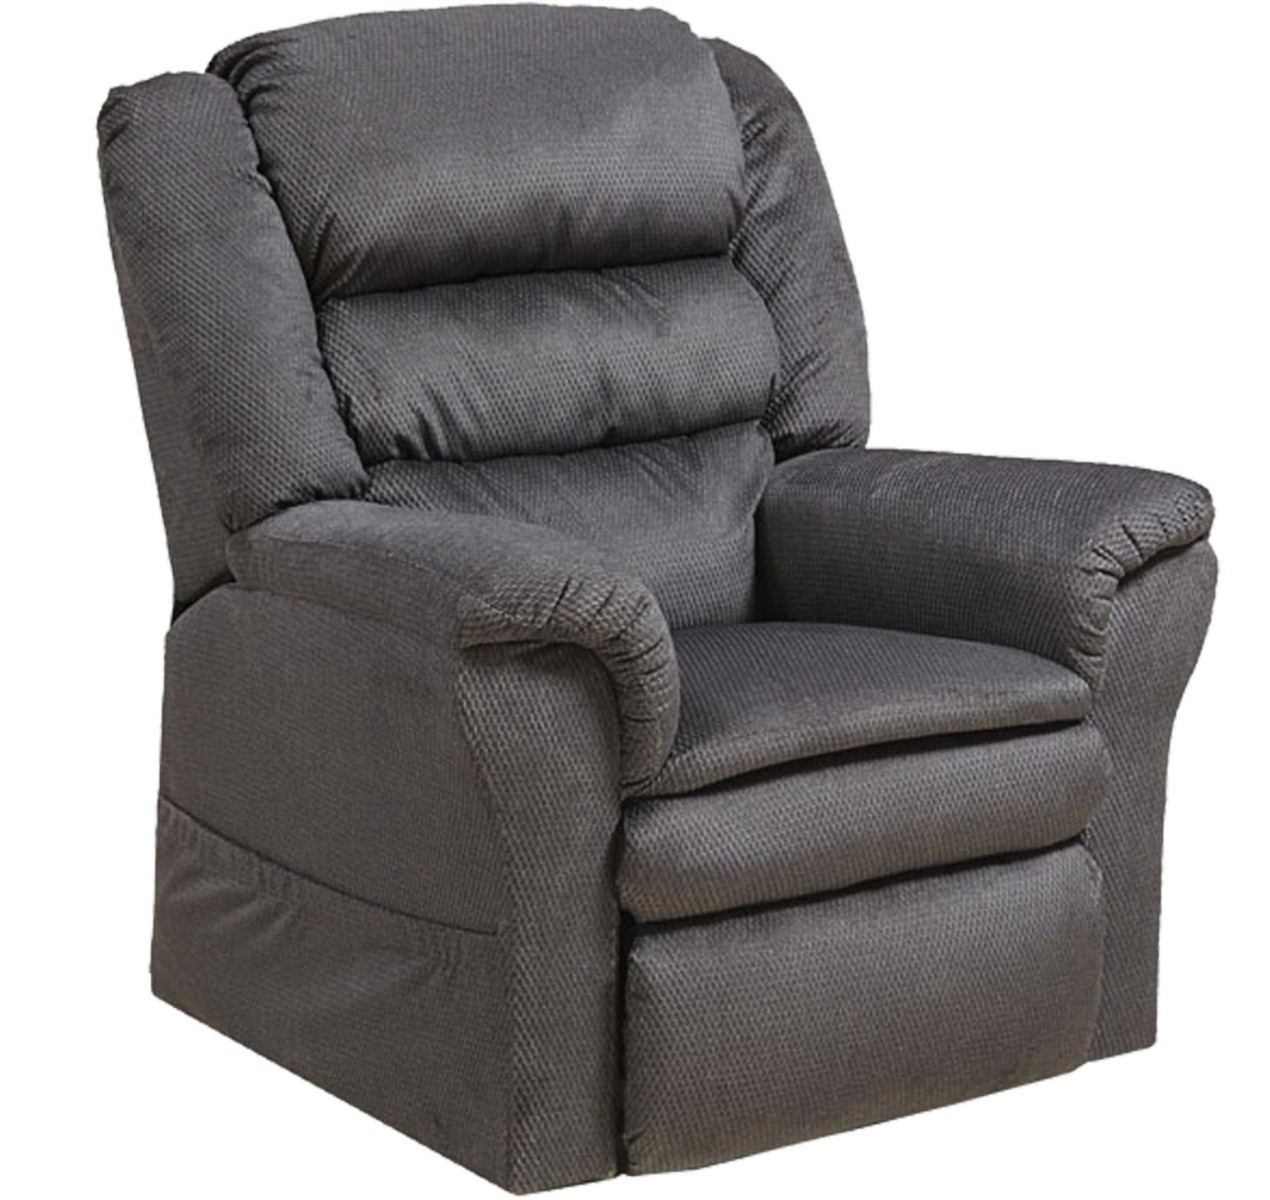 CatNapper Preston Power Lift Recliner with Pillowtop Seat - Smoke